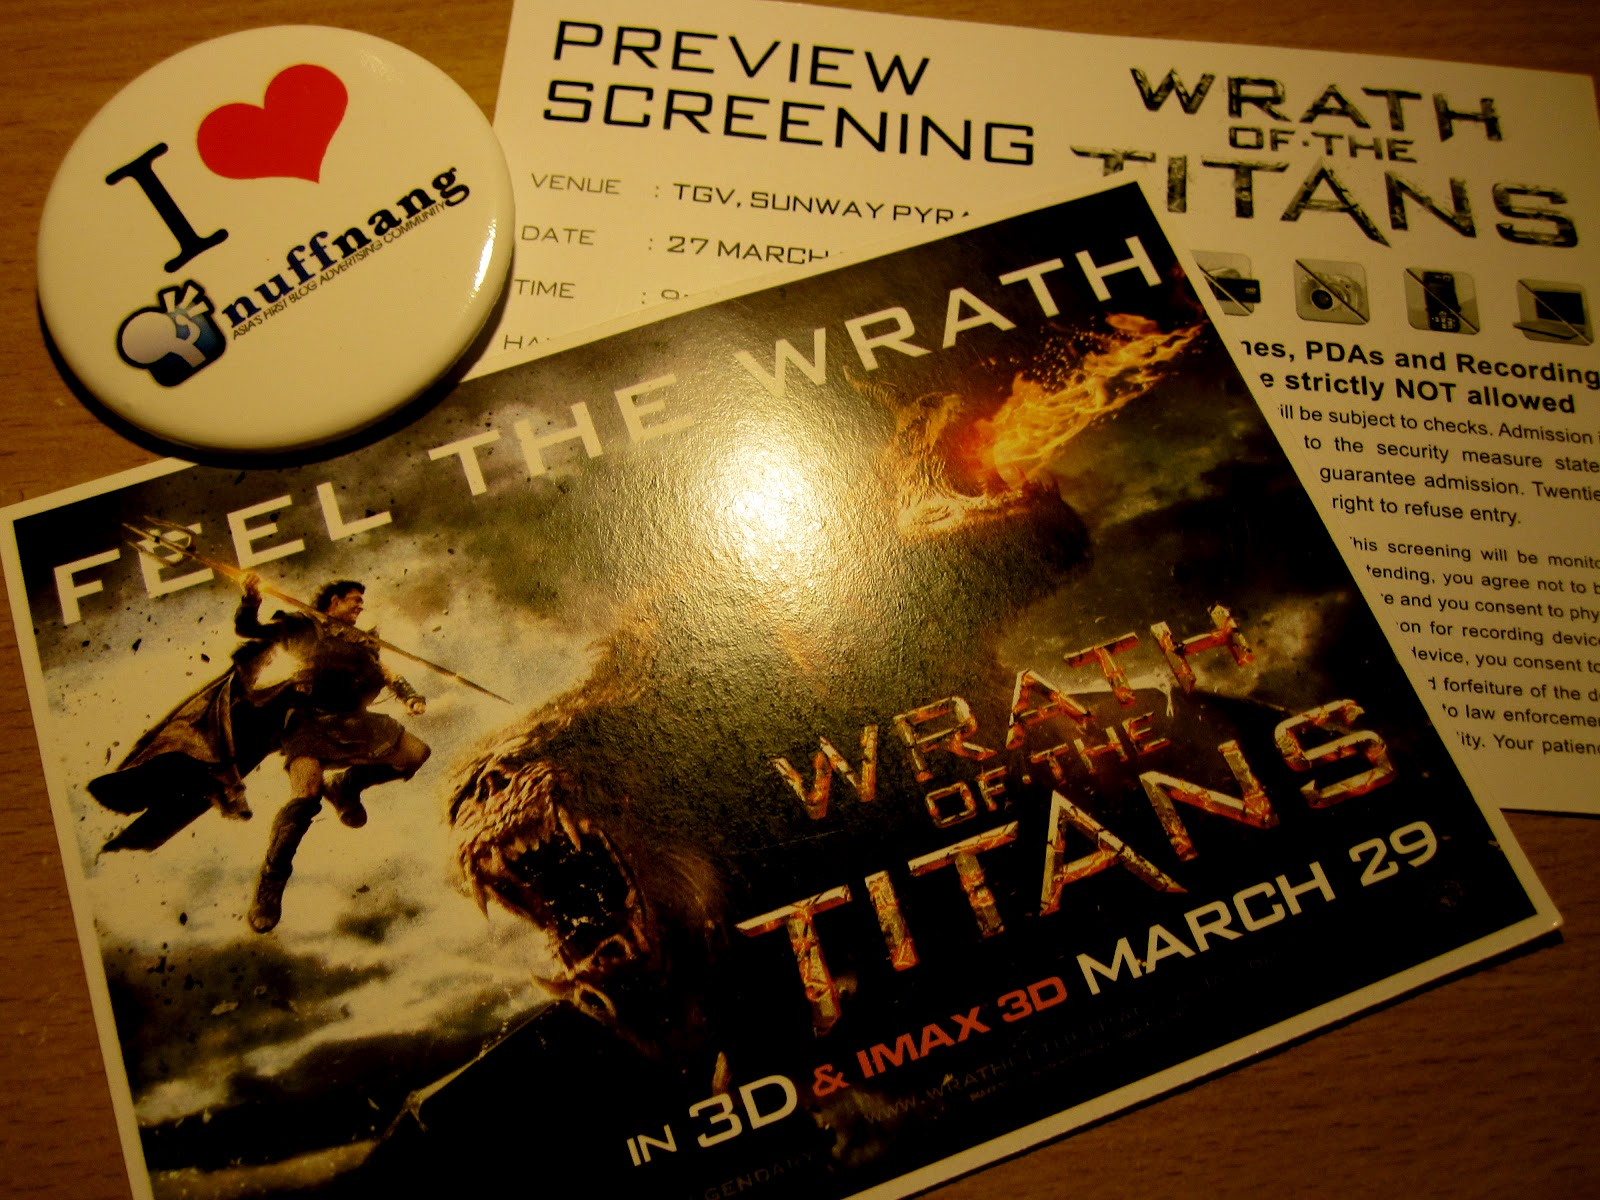 Wrath Of The Titans Hades Pitchfork - ma